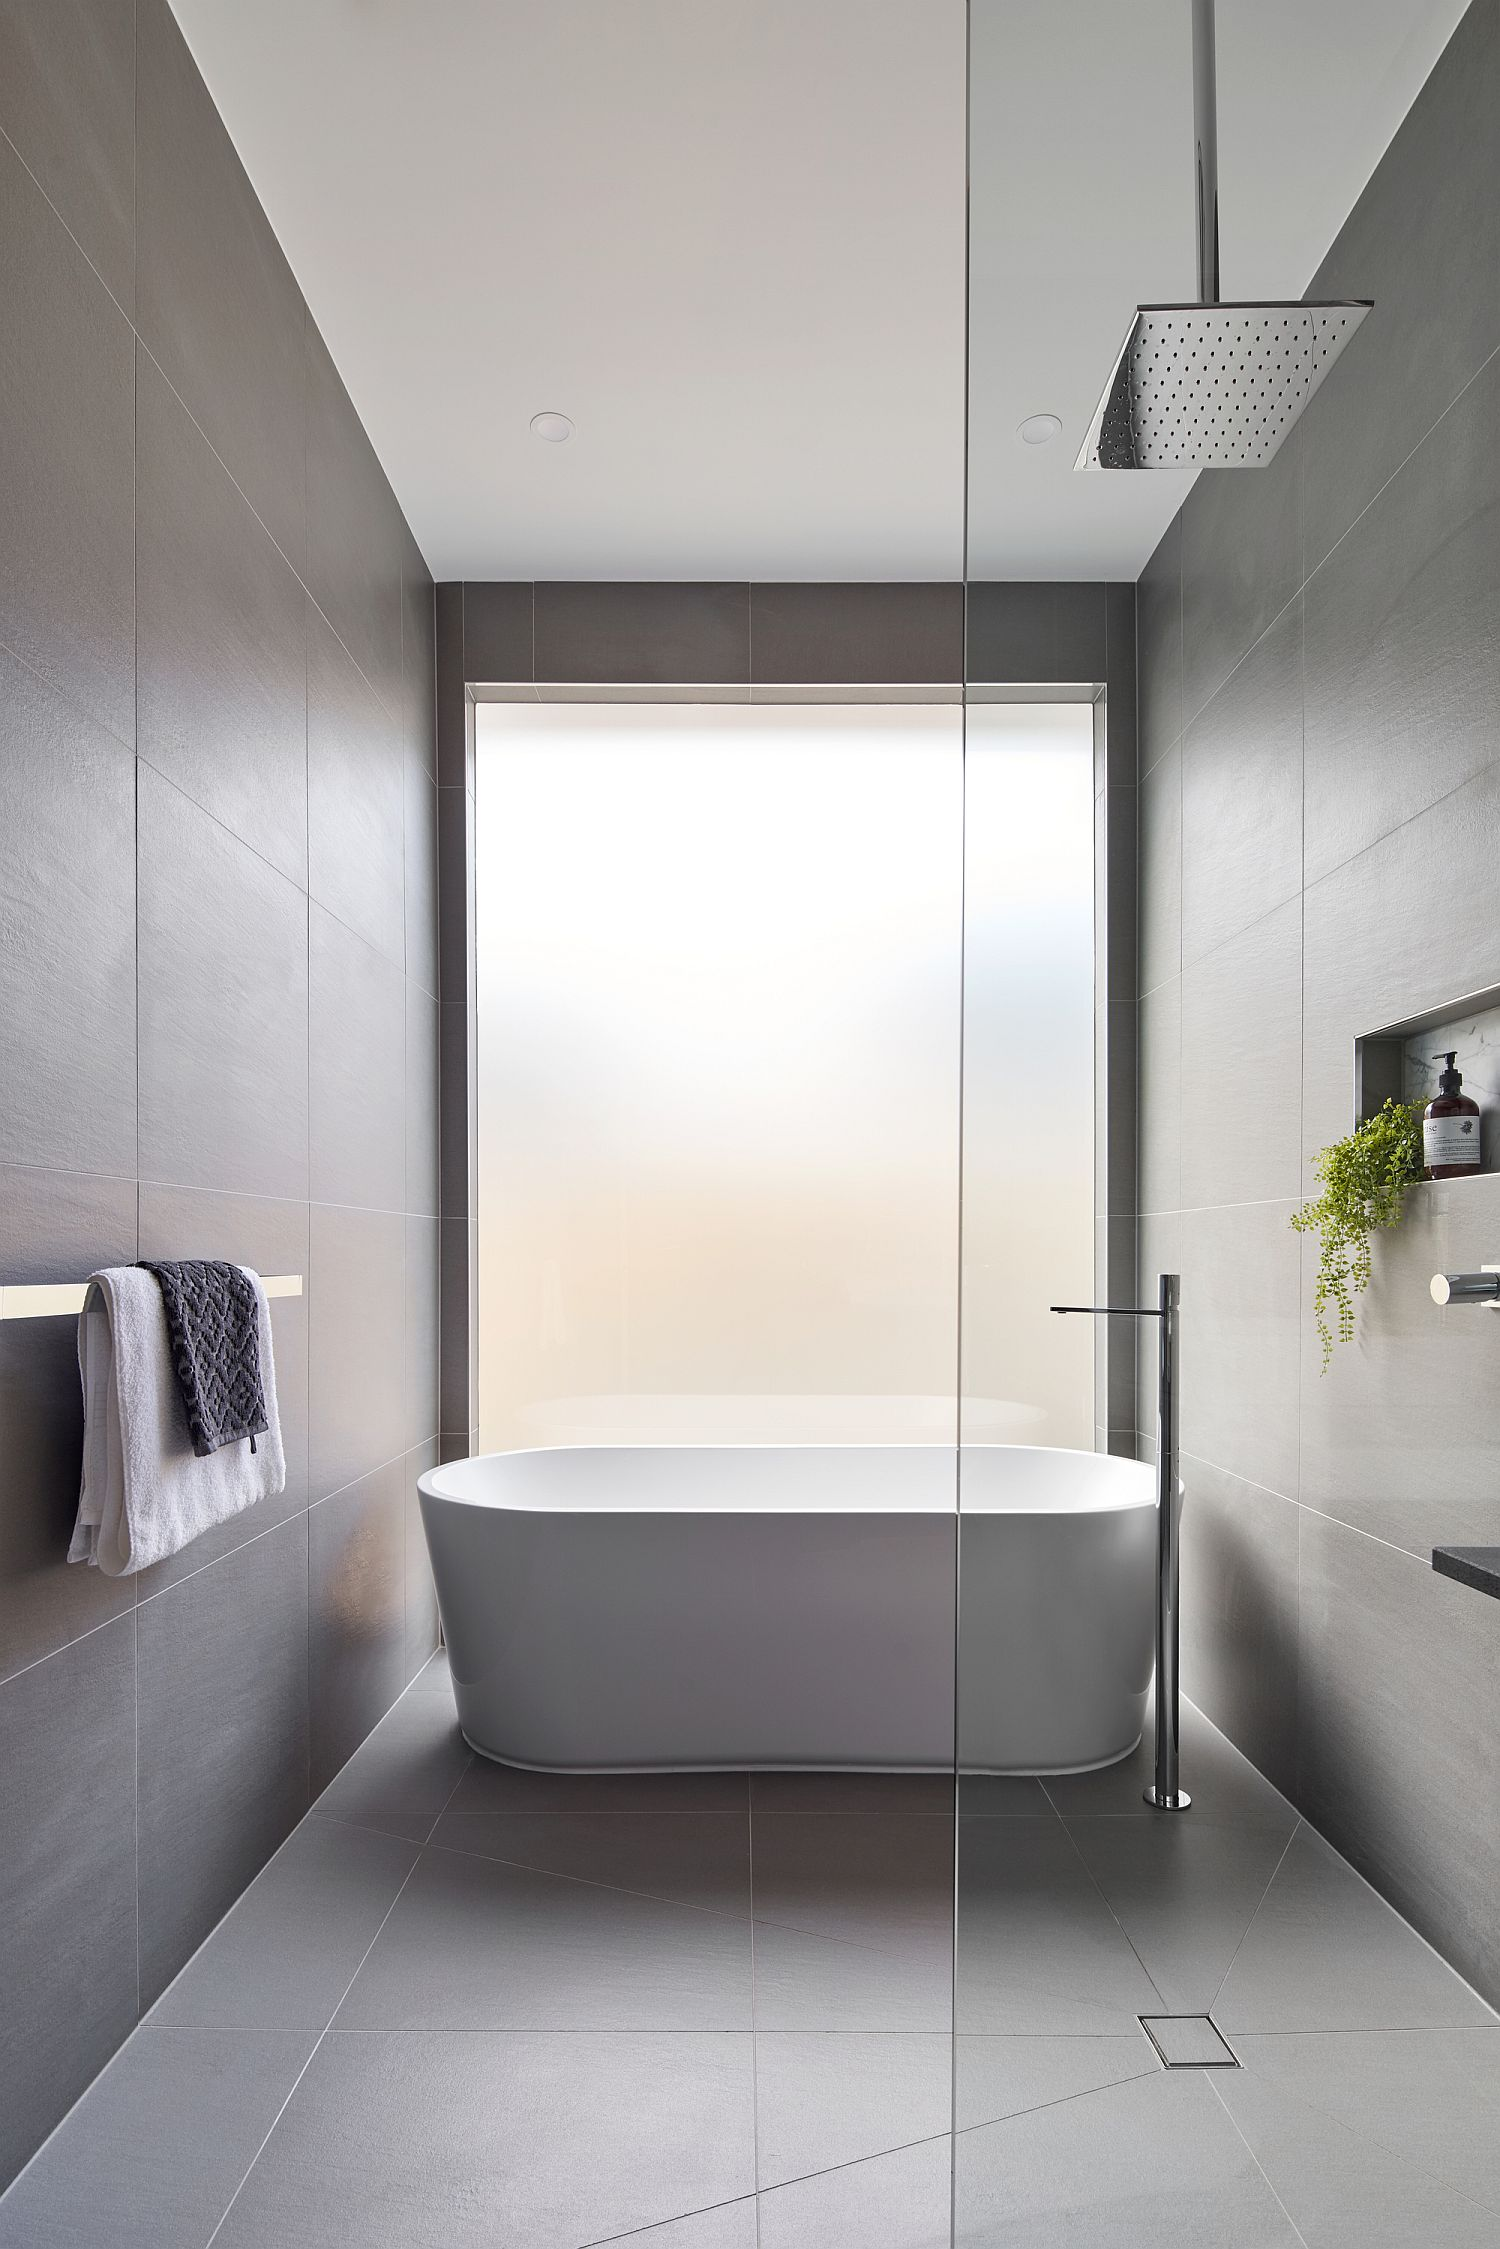 Minimal bathroom feels bright and inviting